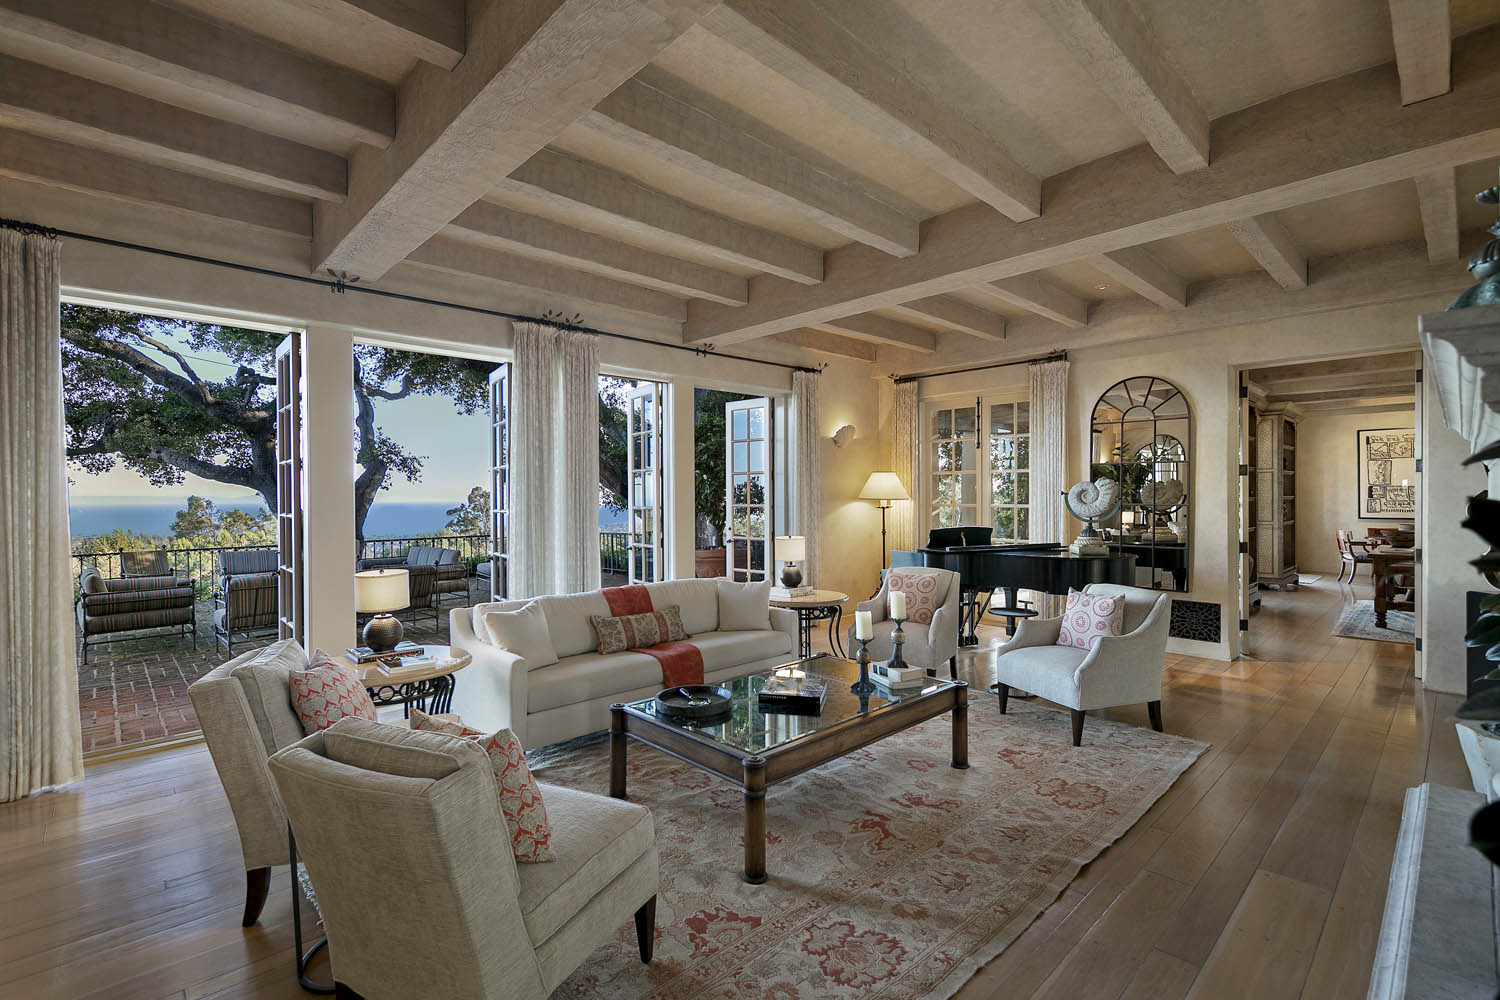 Property for Sale: 900 Knollwood Drive, Montecito, CA 93108 List Price: $19,250,000 6 Beds 7 Full Baths 4 Half Baths 7,457 Sq Ft Main House Montecito Legacy Estate!